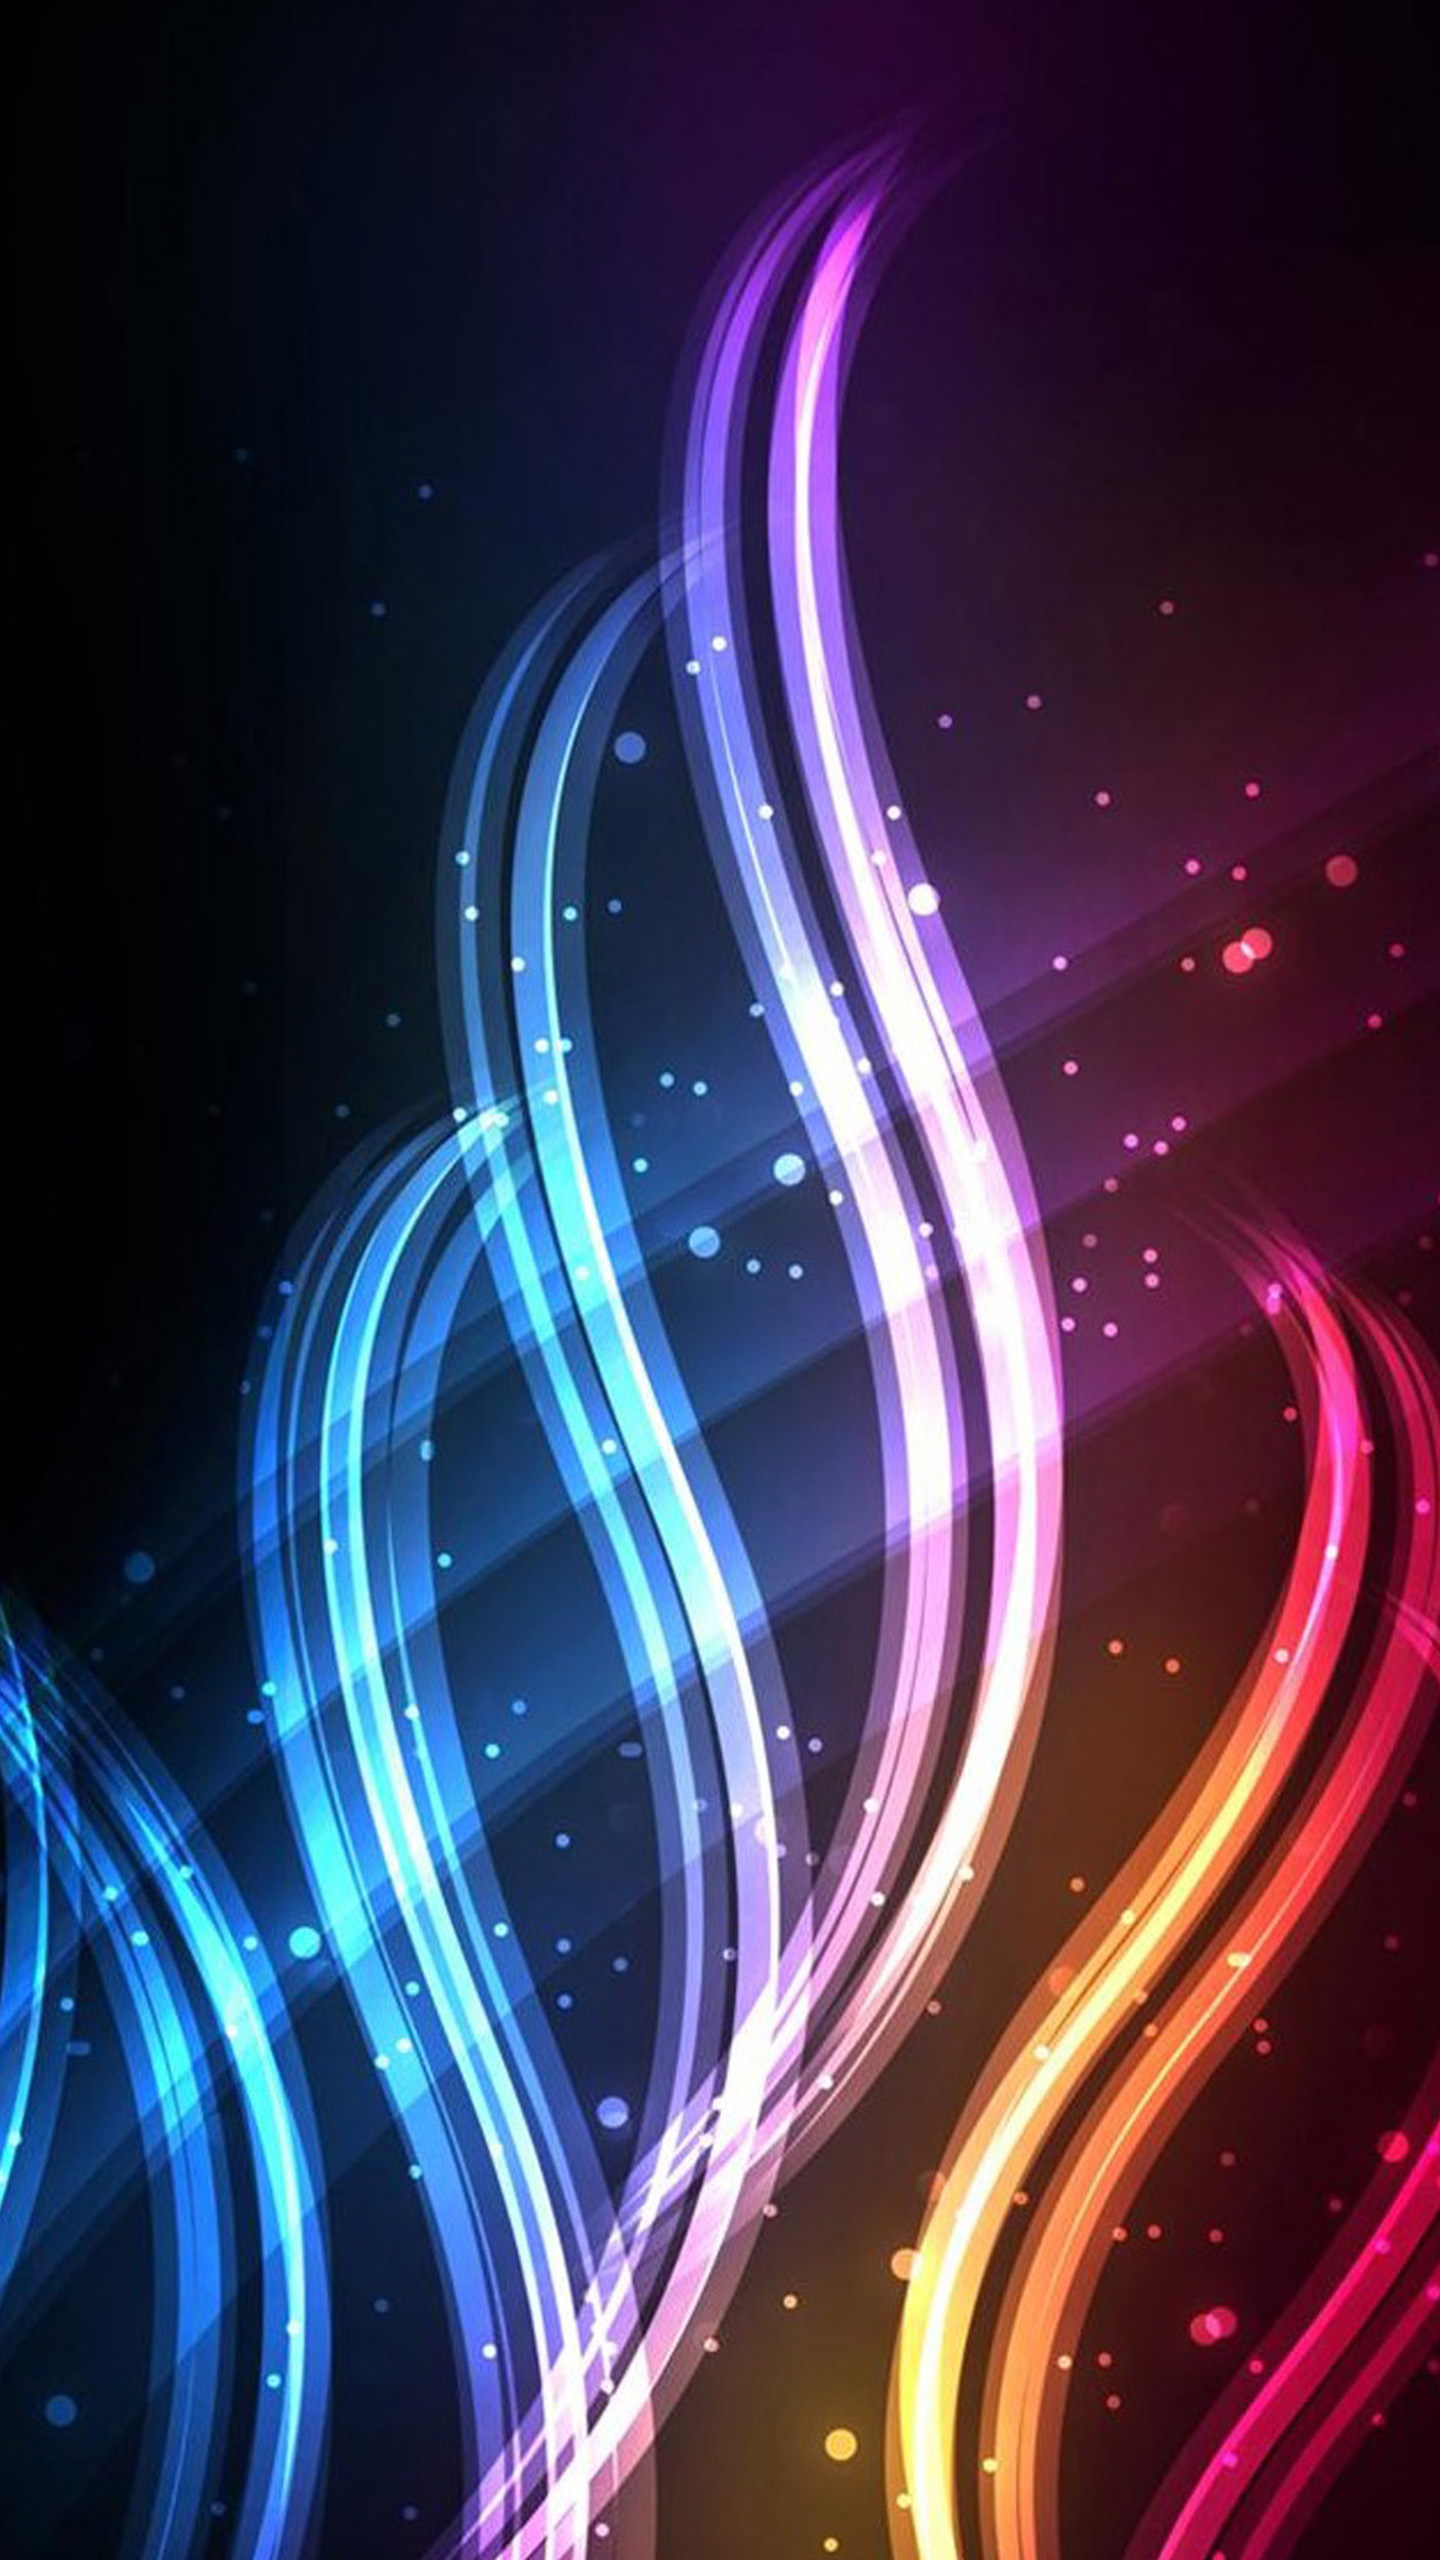 quad hd mobile phone wallpapers 1440x2560 neon swirls 1440x2560